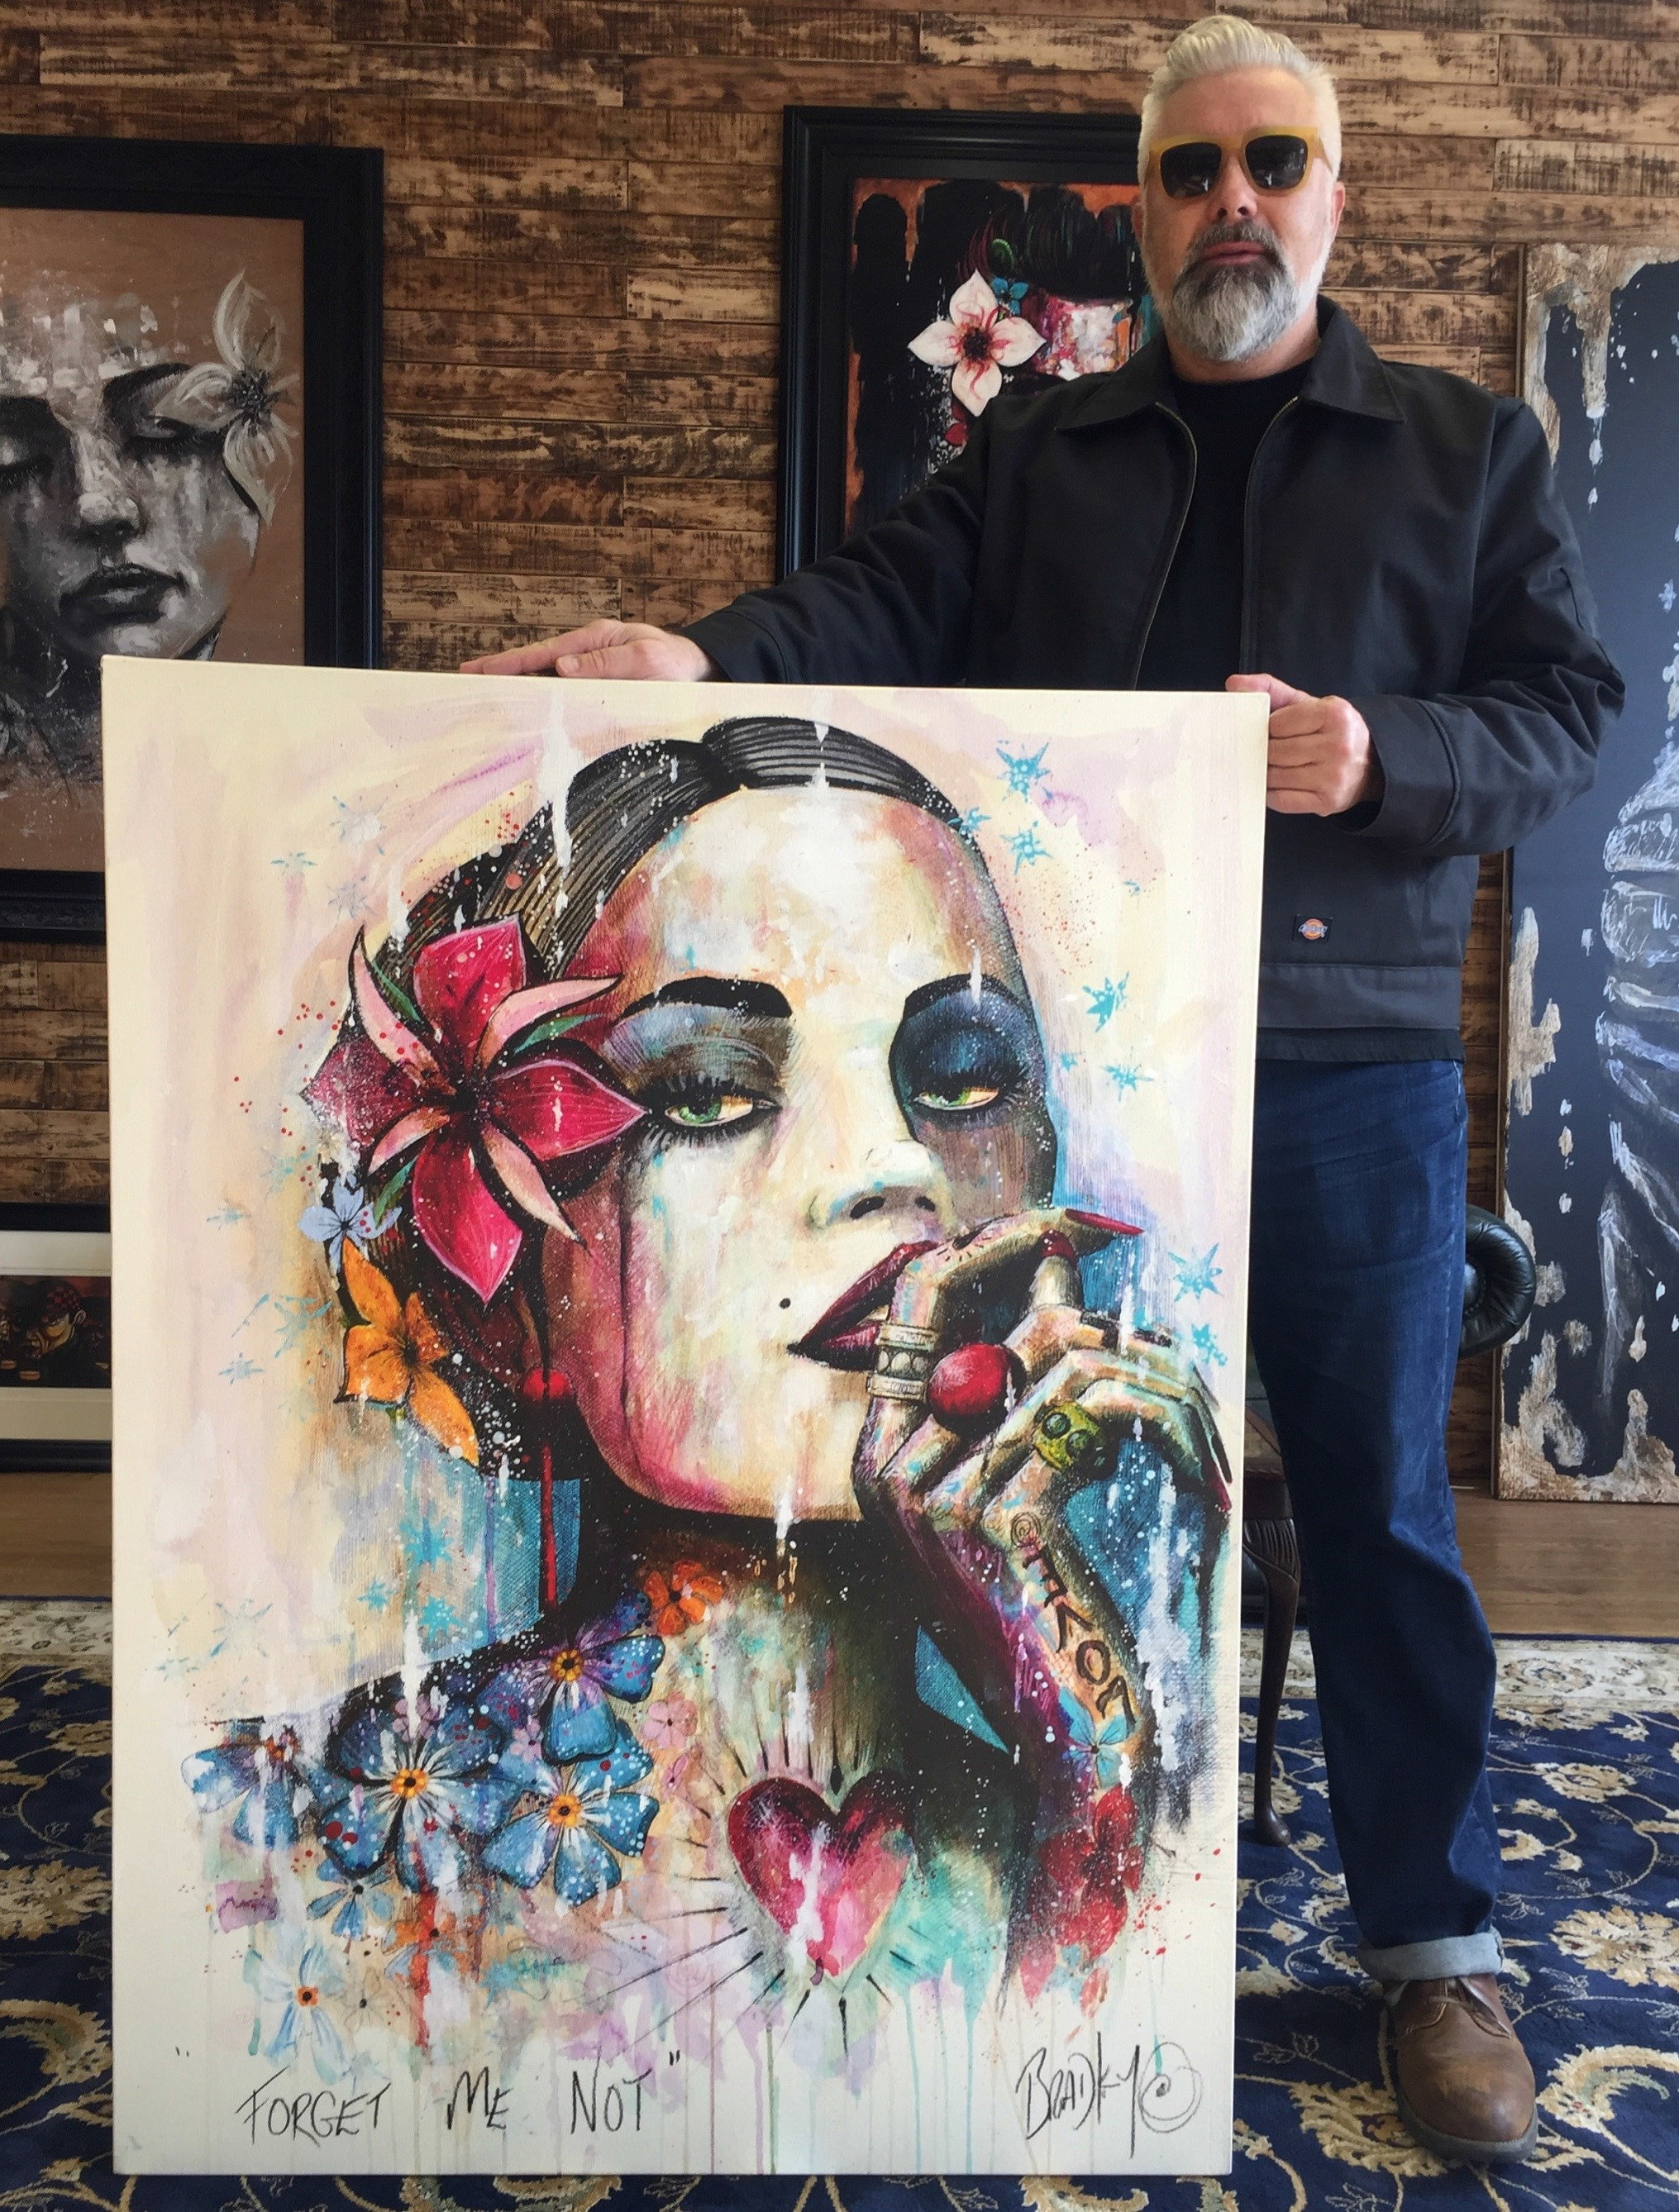 Forget Me Not painting by local artist Terry Bradley in collaboration with House of Fraser